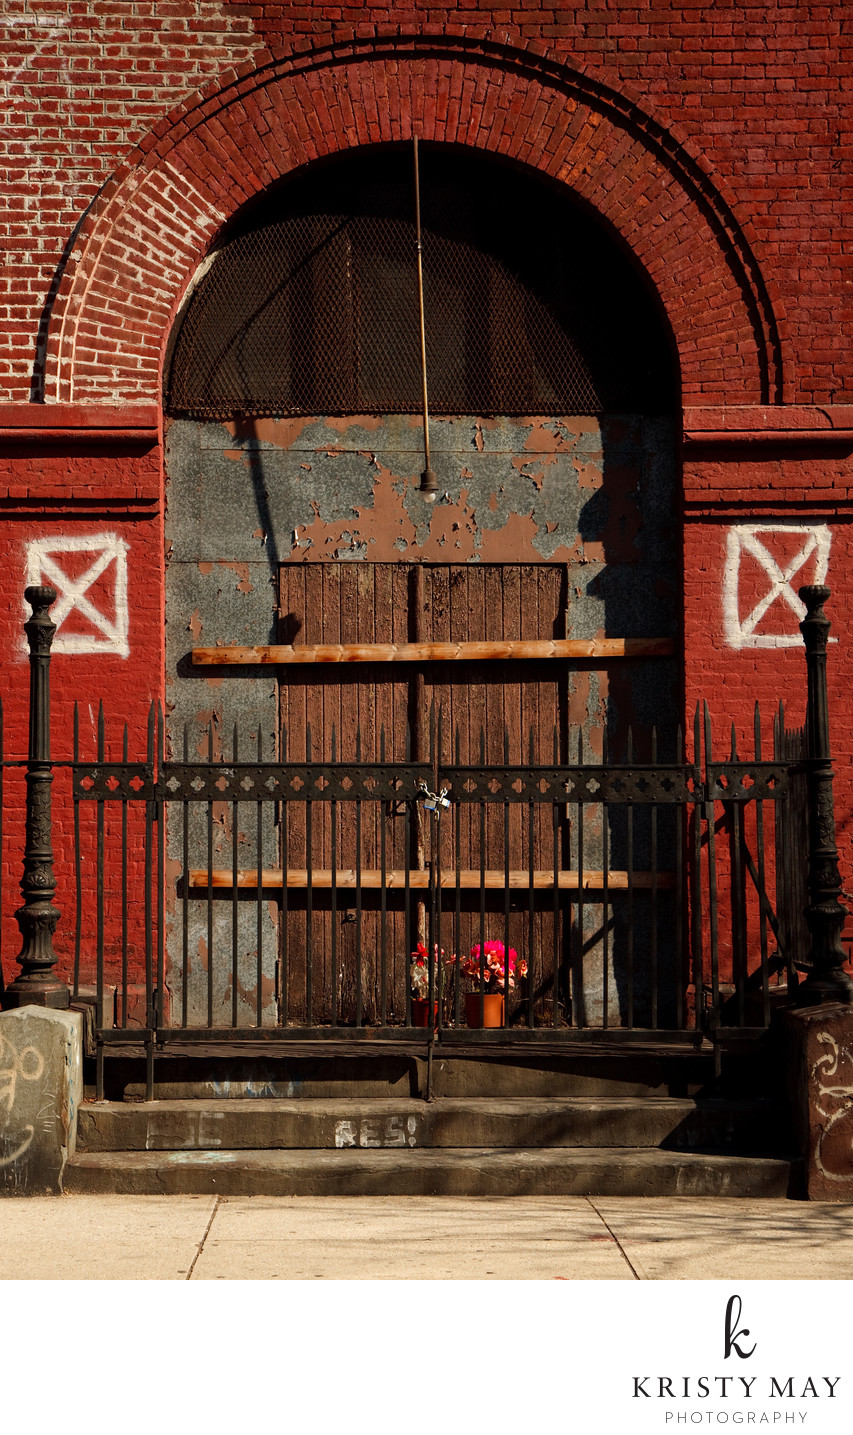 125 Eagle Street Church, Greenpoint, 2009